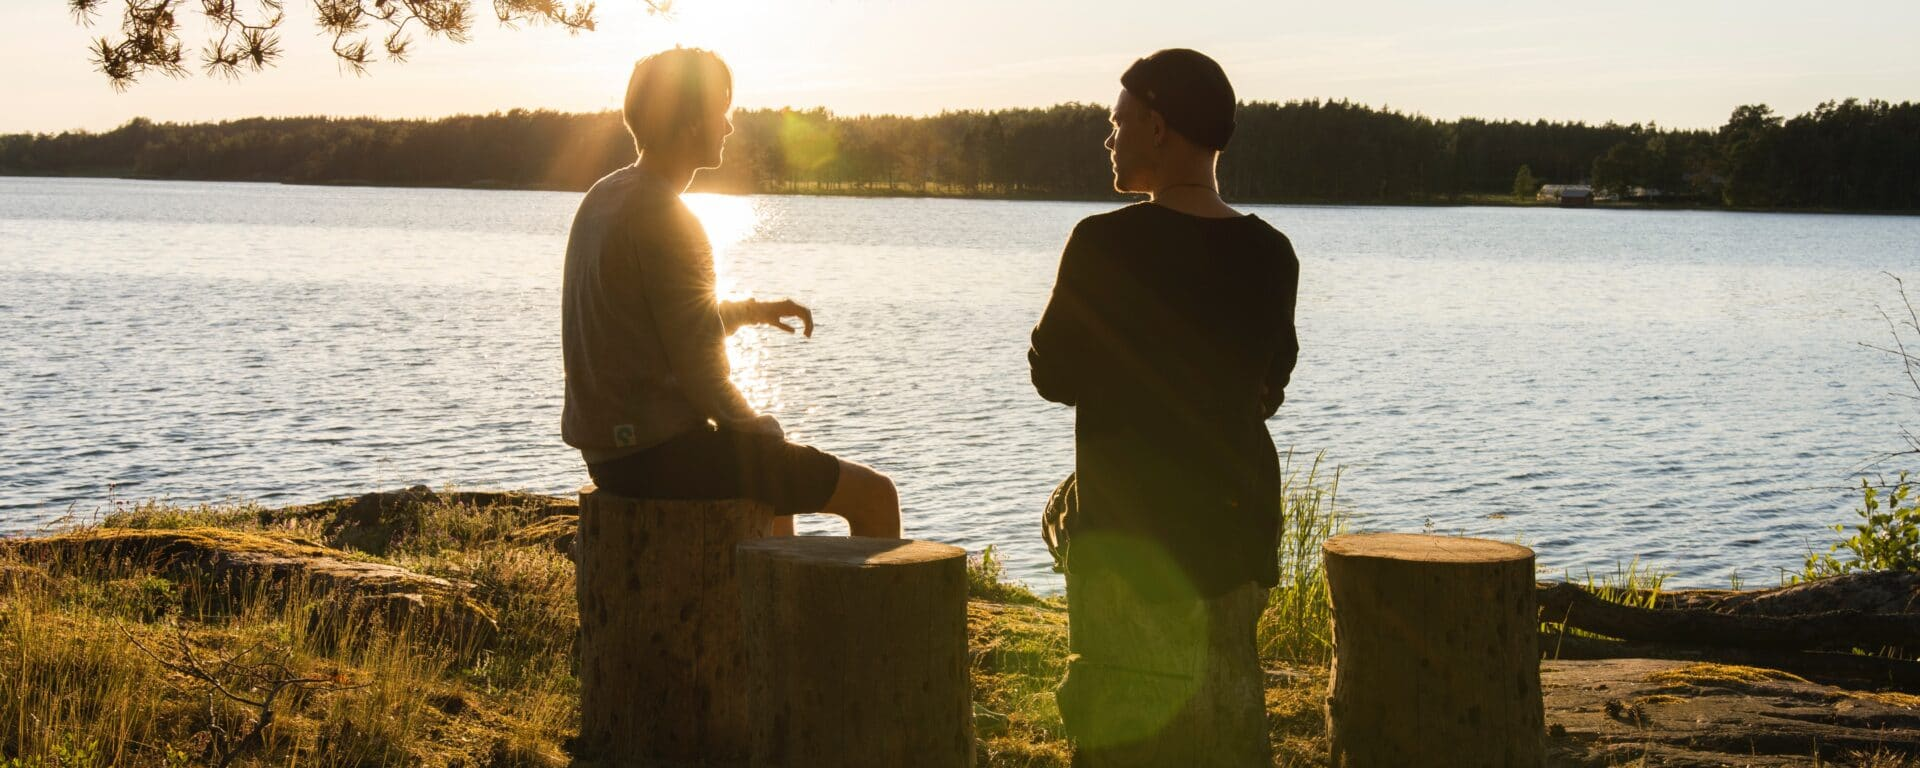 3 Simple Steps for Choosing Life Instead of Death Today